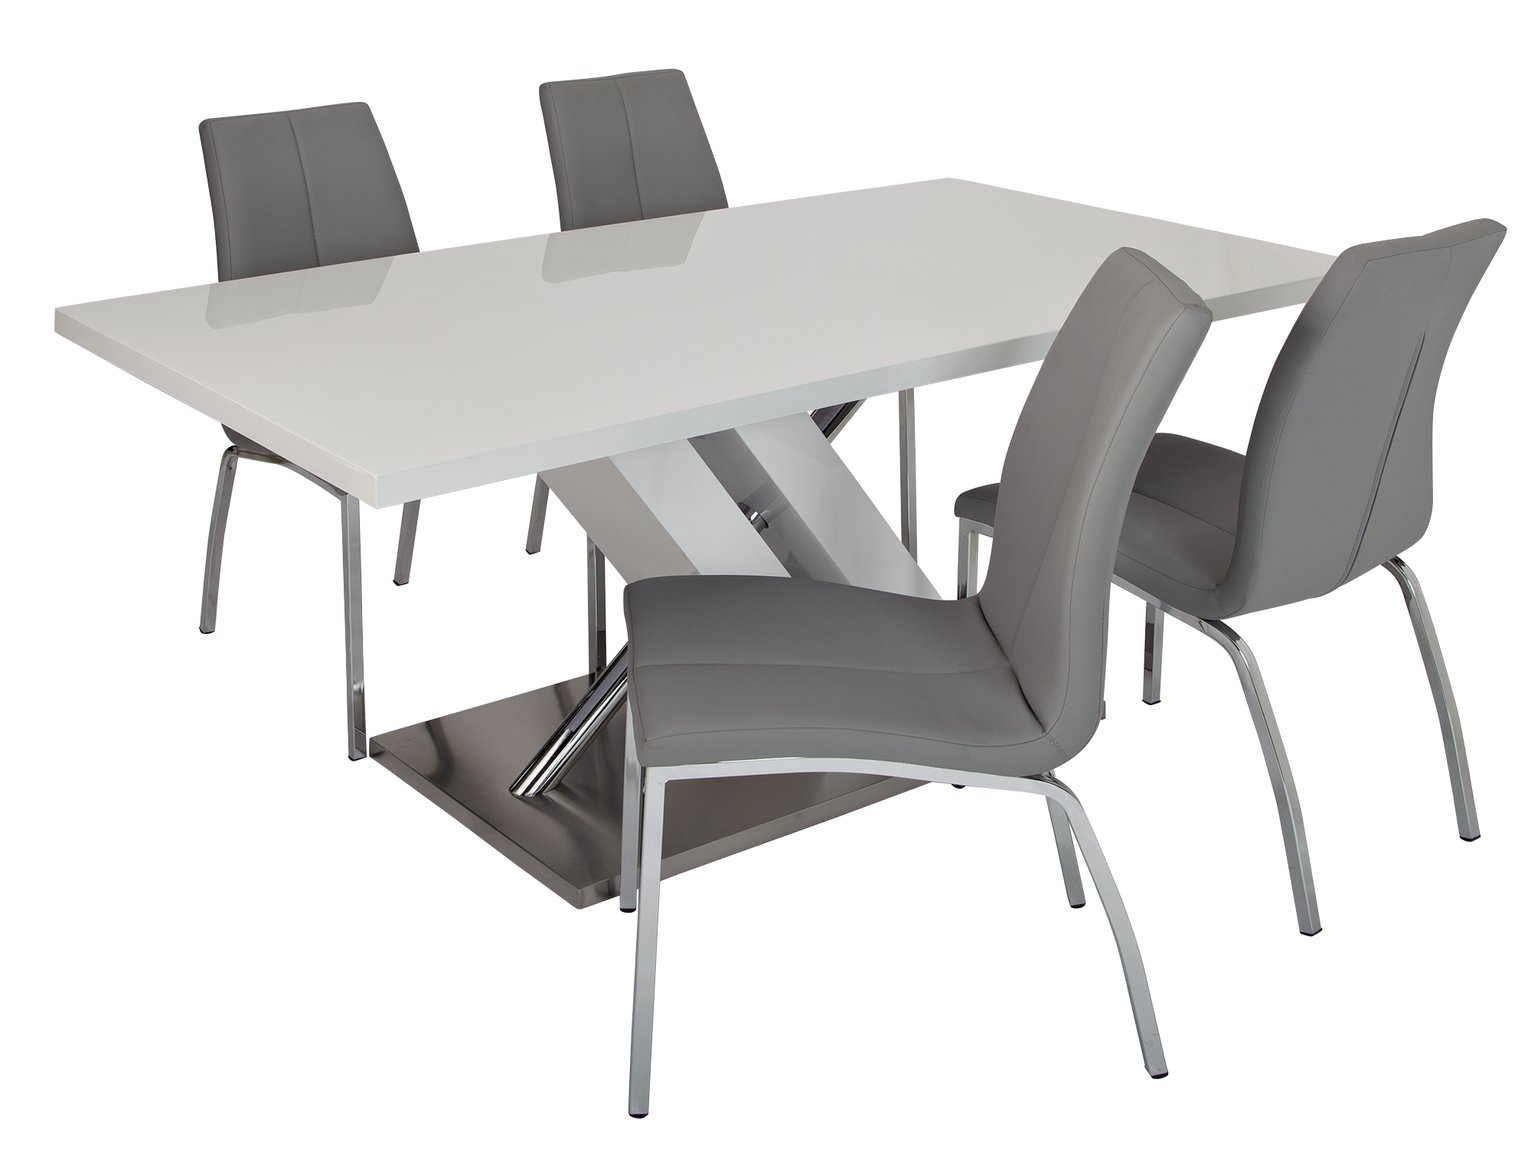 Argos Home Belvoir Pedestal Table and 4 Chairs review